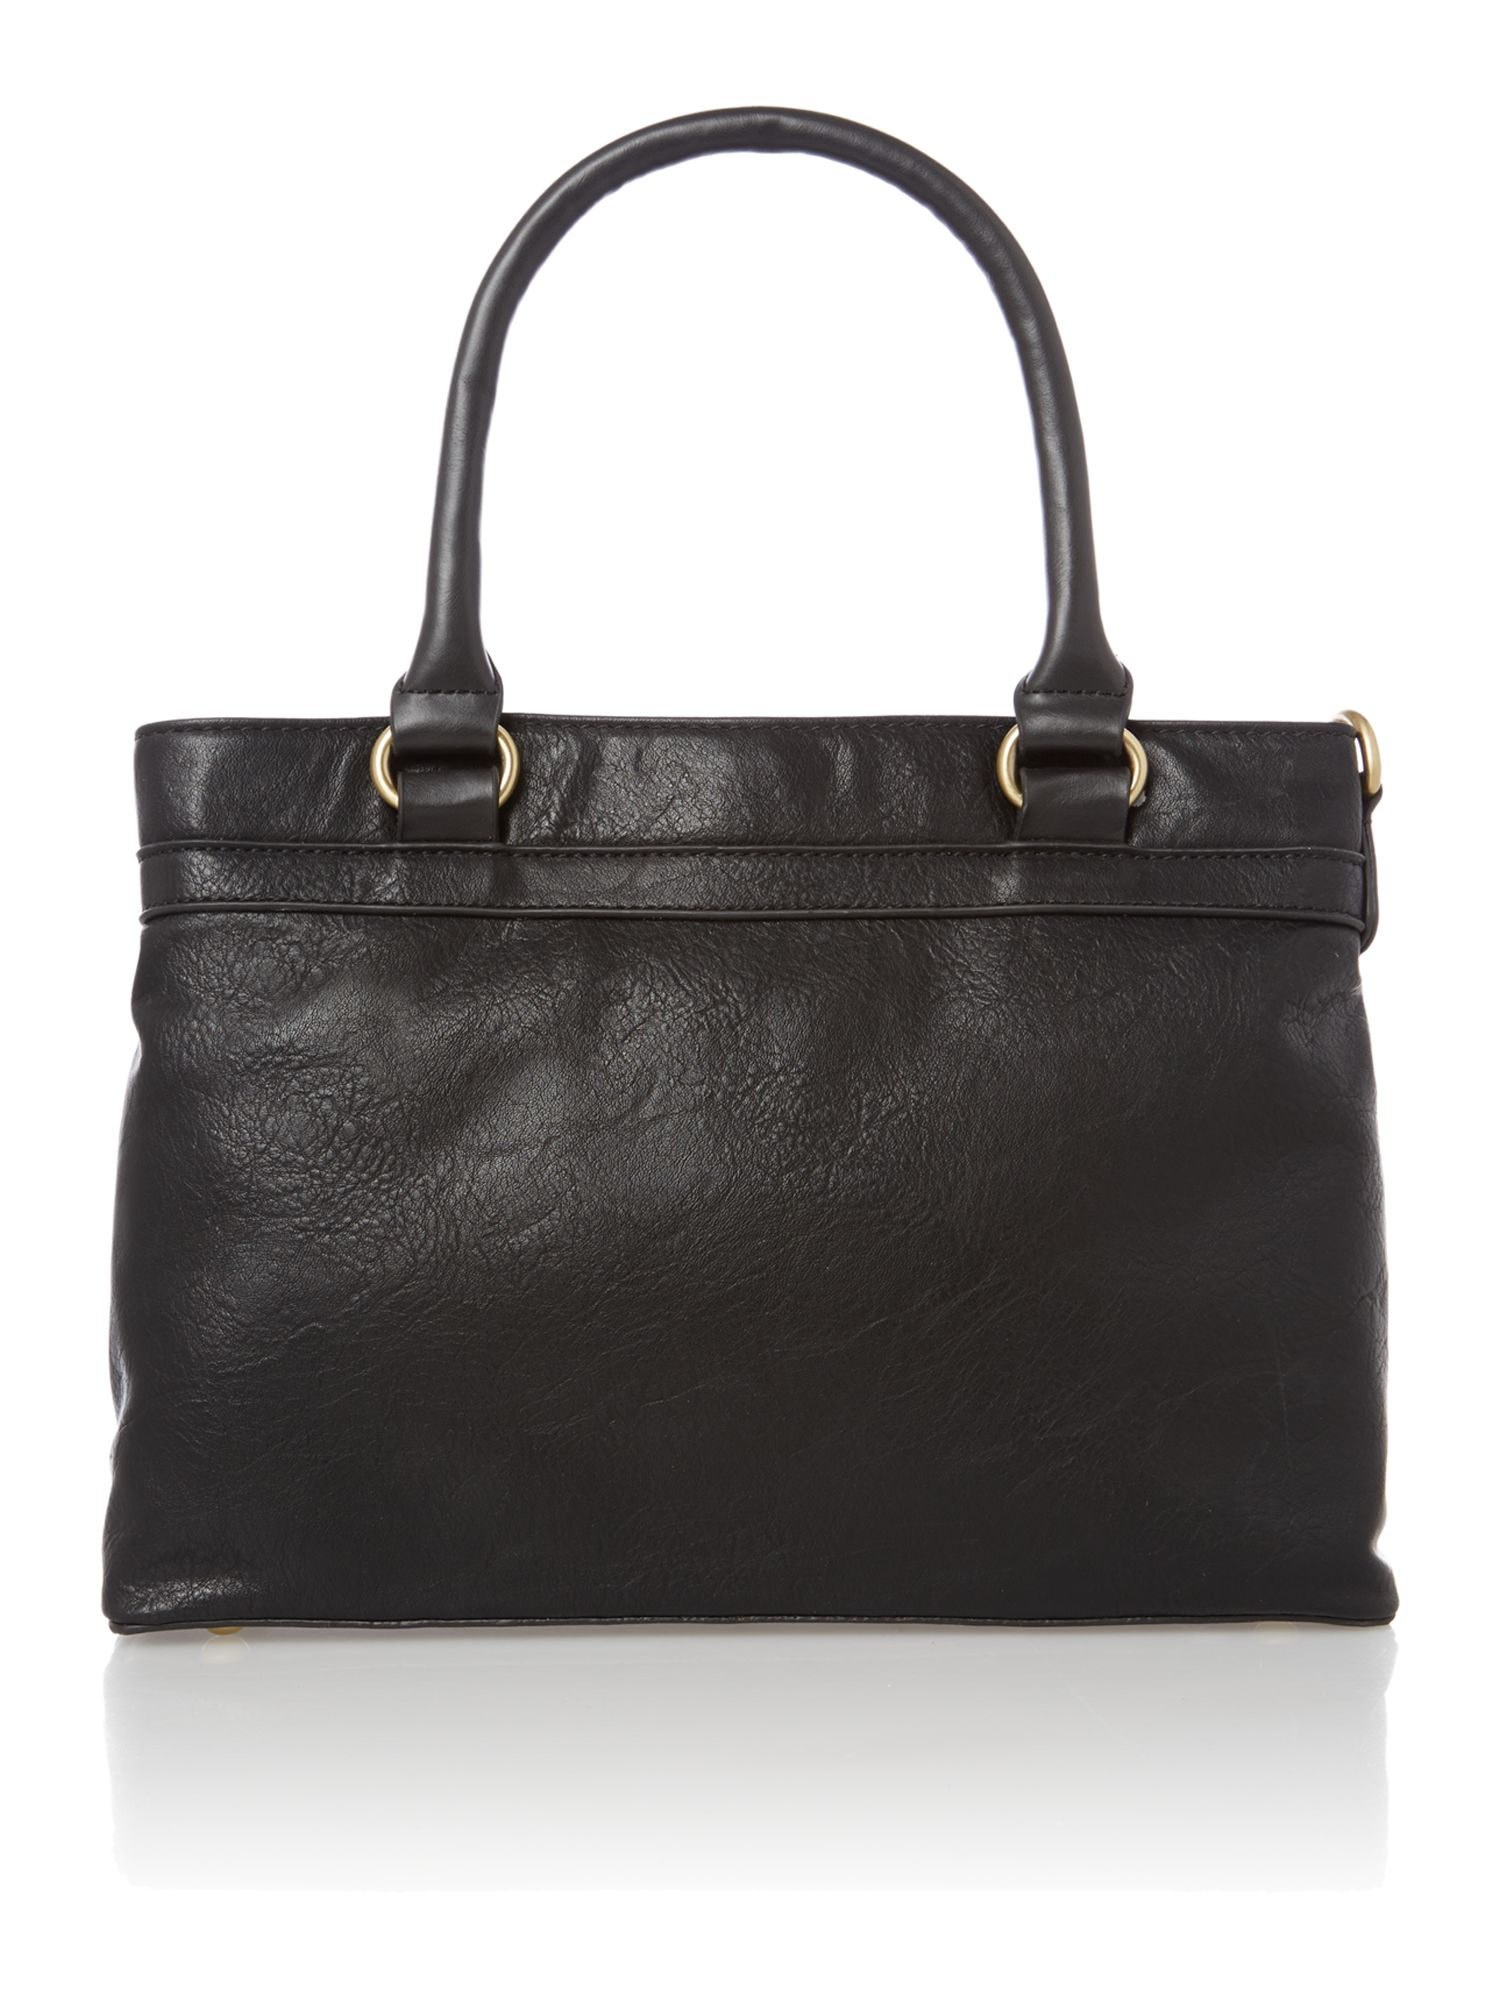 Black mini tote bag